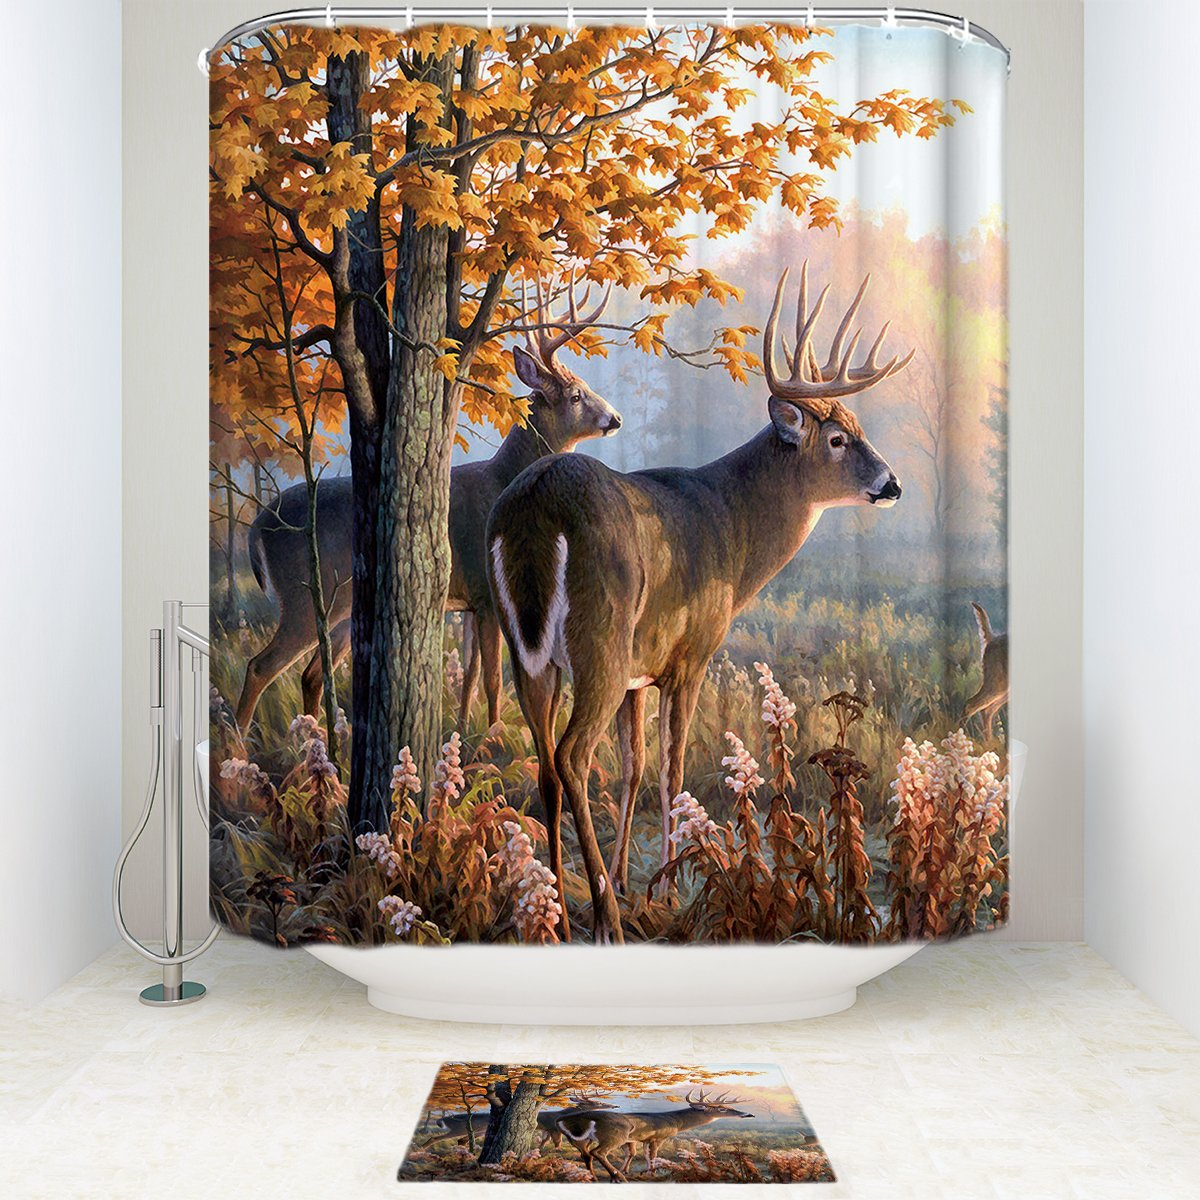 Custom Autumn Nature Wildlife Animal Deers Hunting Non-slip Printed Bathroom Mat, Fabric Bathroom Shower Curtain With Rug Mat 12 Hooks Set of 2 Items